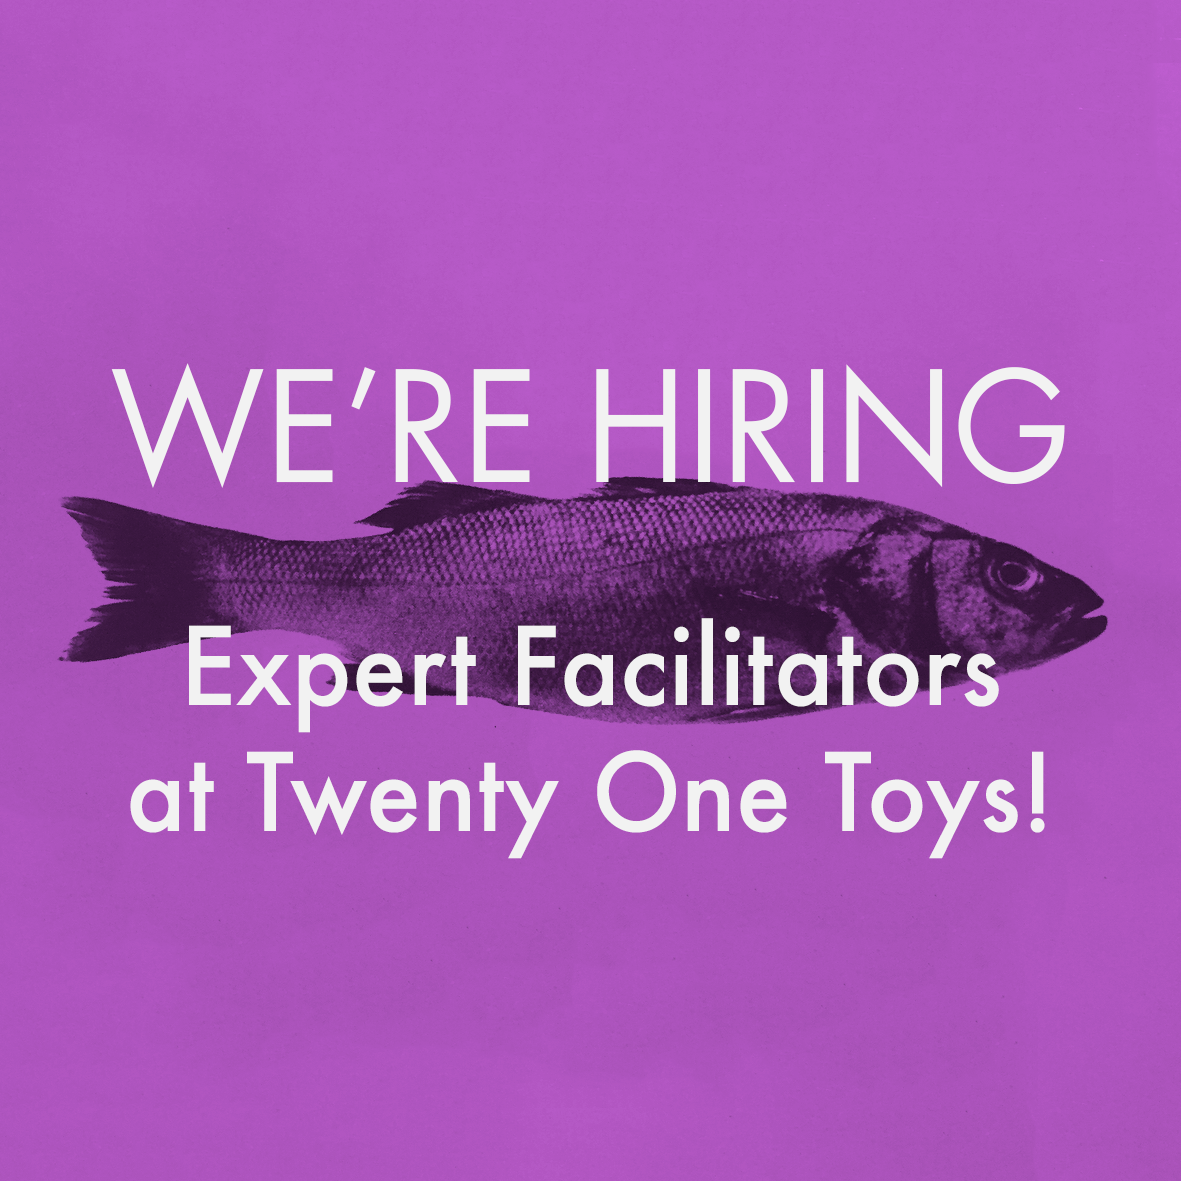 We're hiring Expert Facilitators at Twenty One Toys!